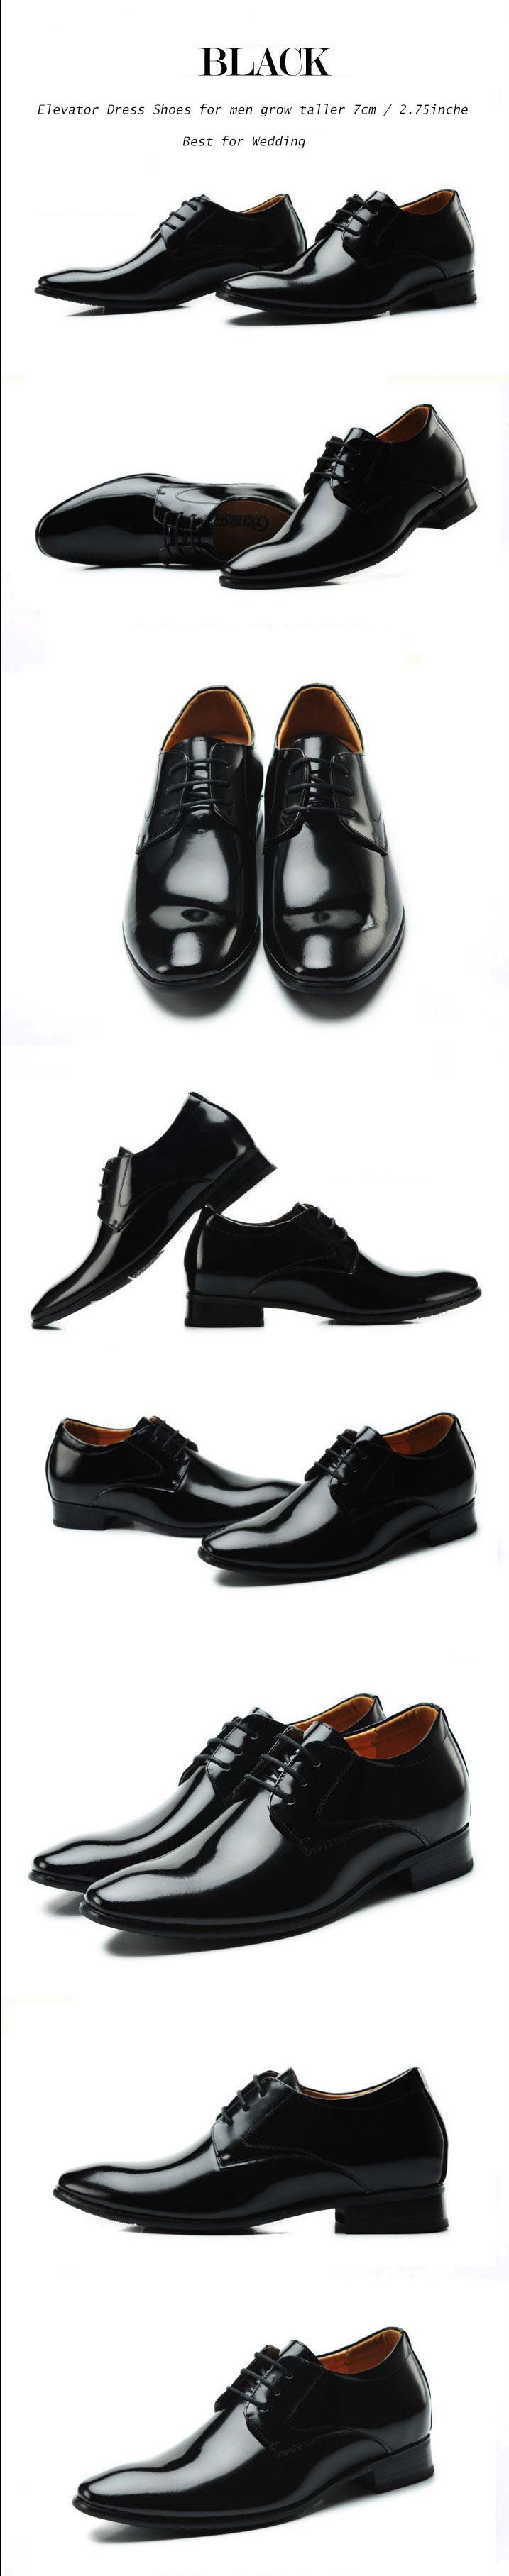 High quality leather men's elevator business dress shoes height increasing 7cm / 2.75inches wedding shoes